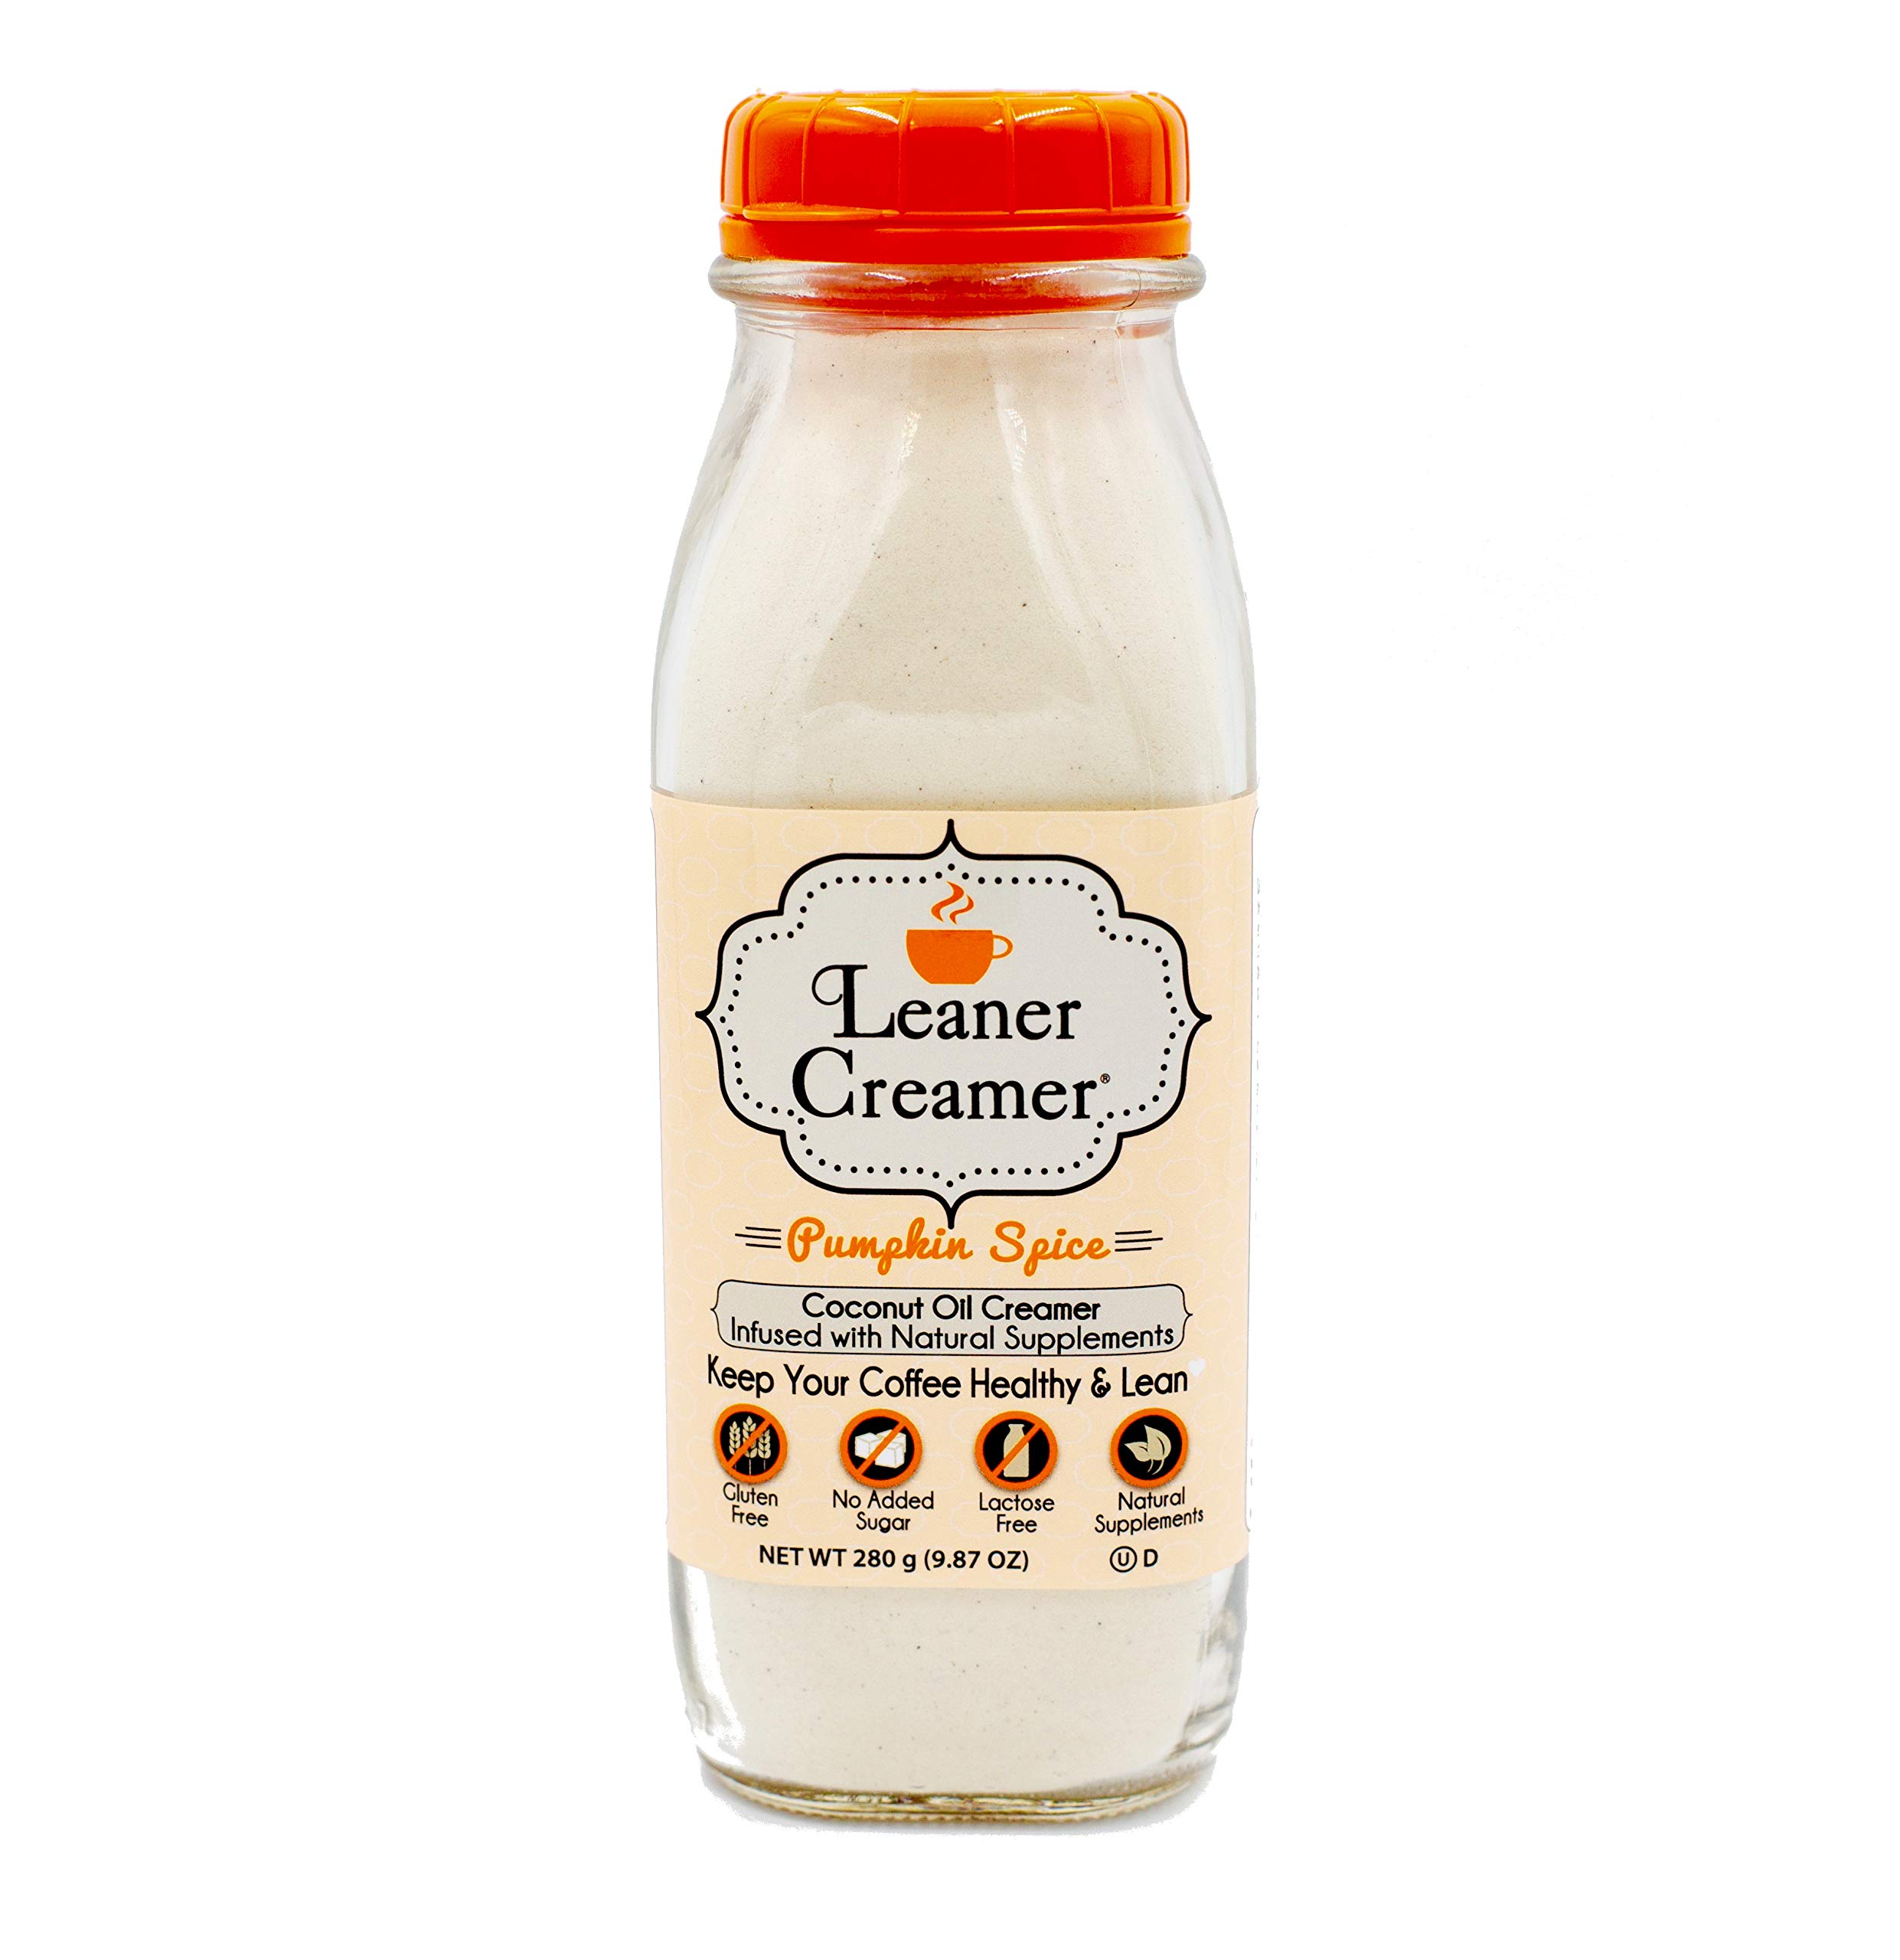 Leaner Creamer: The Lactose-Free All Natural Coffee Creamer Powder- A Healthy Complement for Coffee and Tea- May Promote Weight Loss and Suppress Appetite- Pumpkin Spice - 280Gr